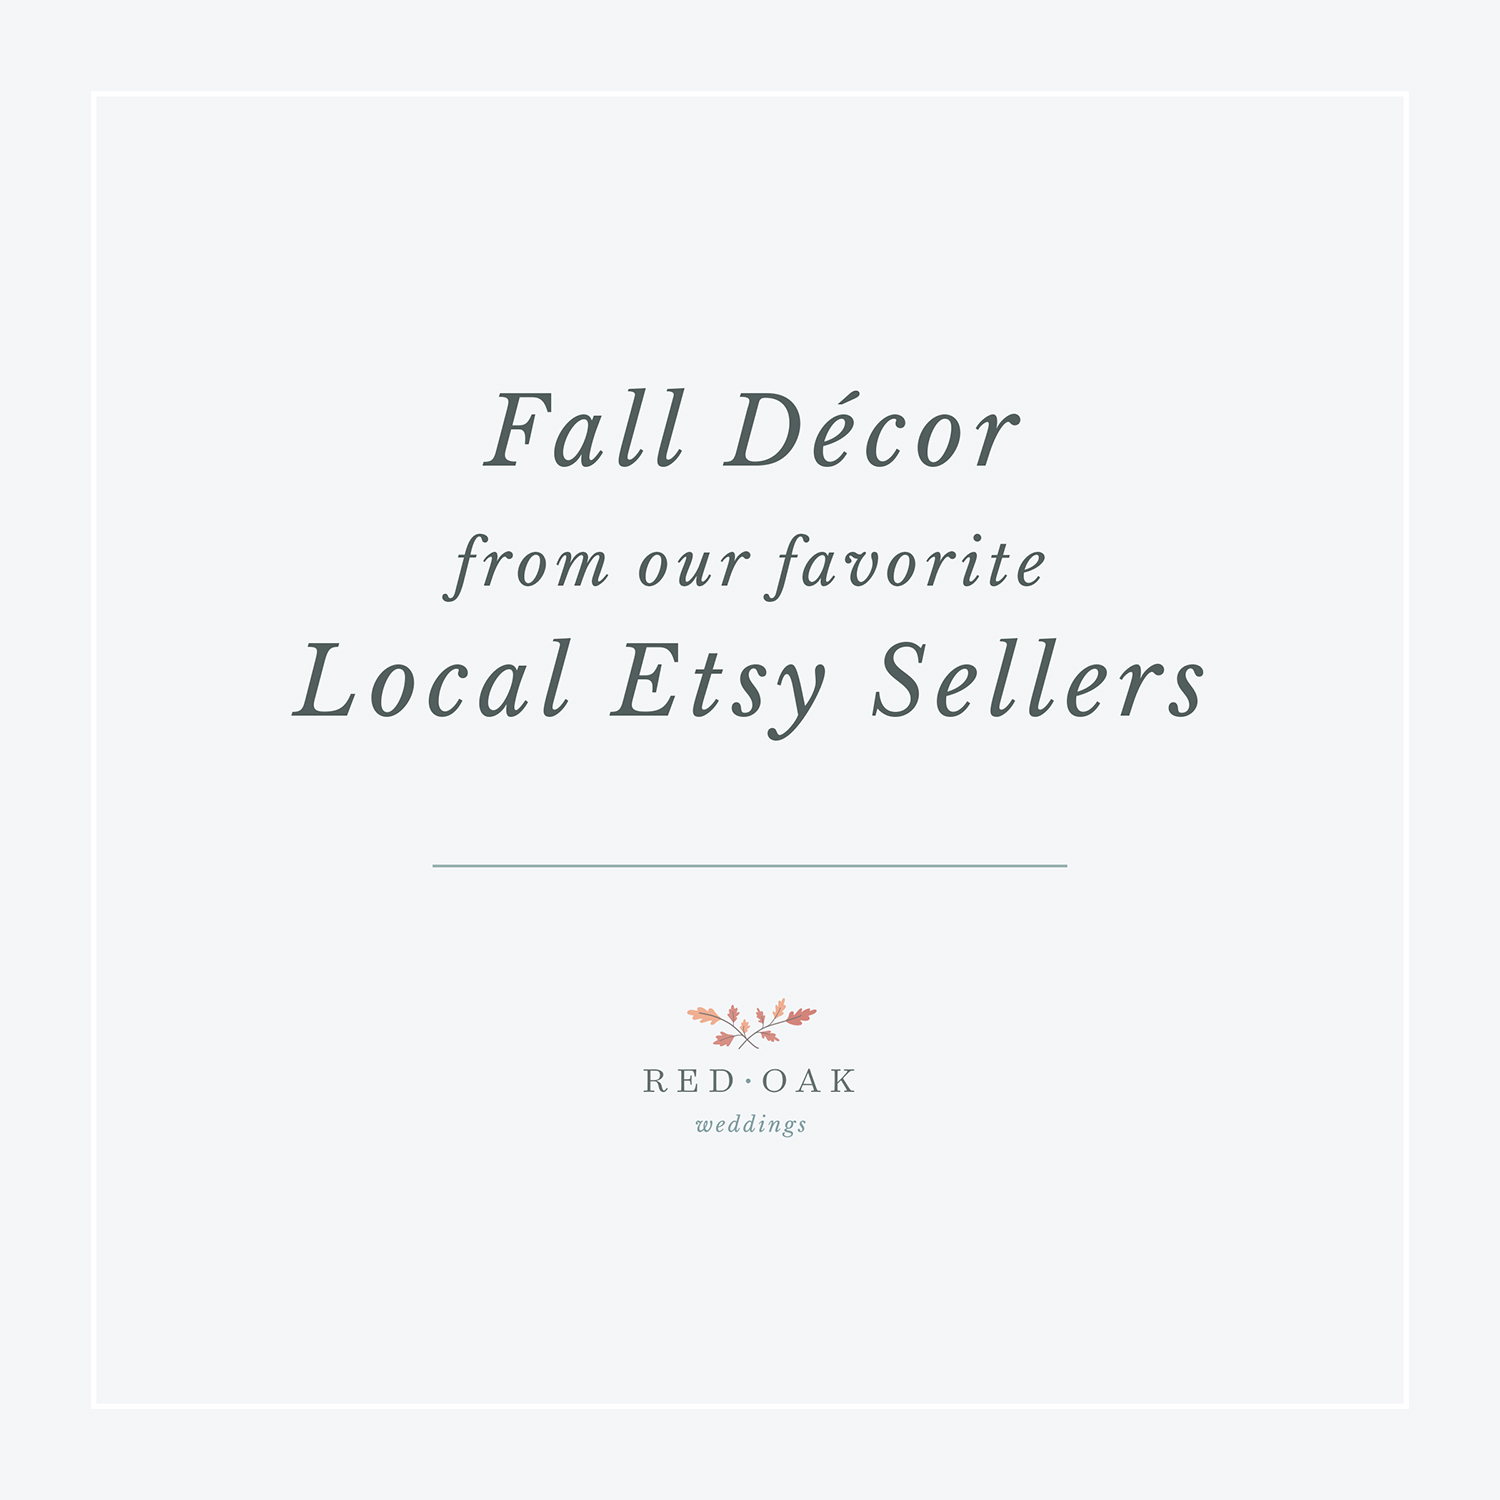 Fall Décor from our Favorite Local Etsy Sellers